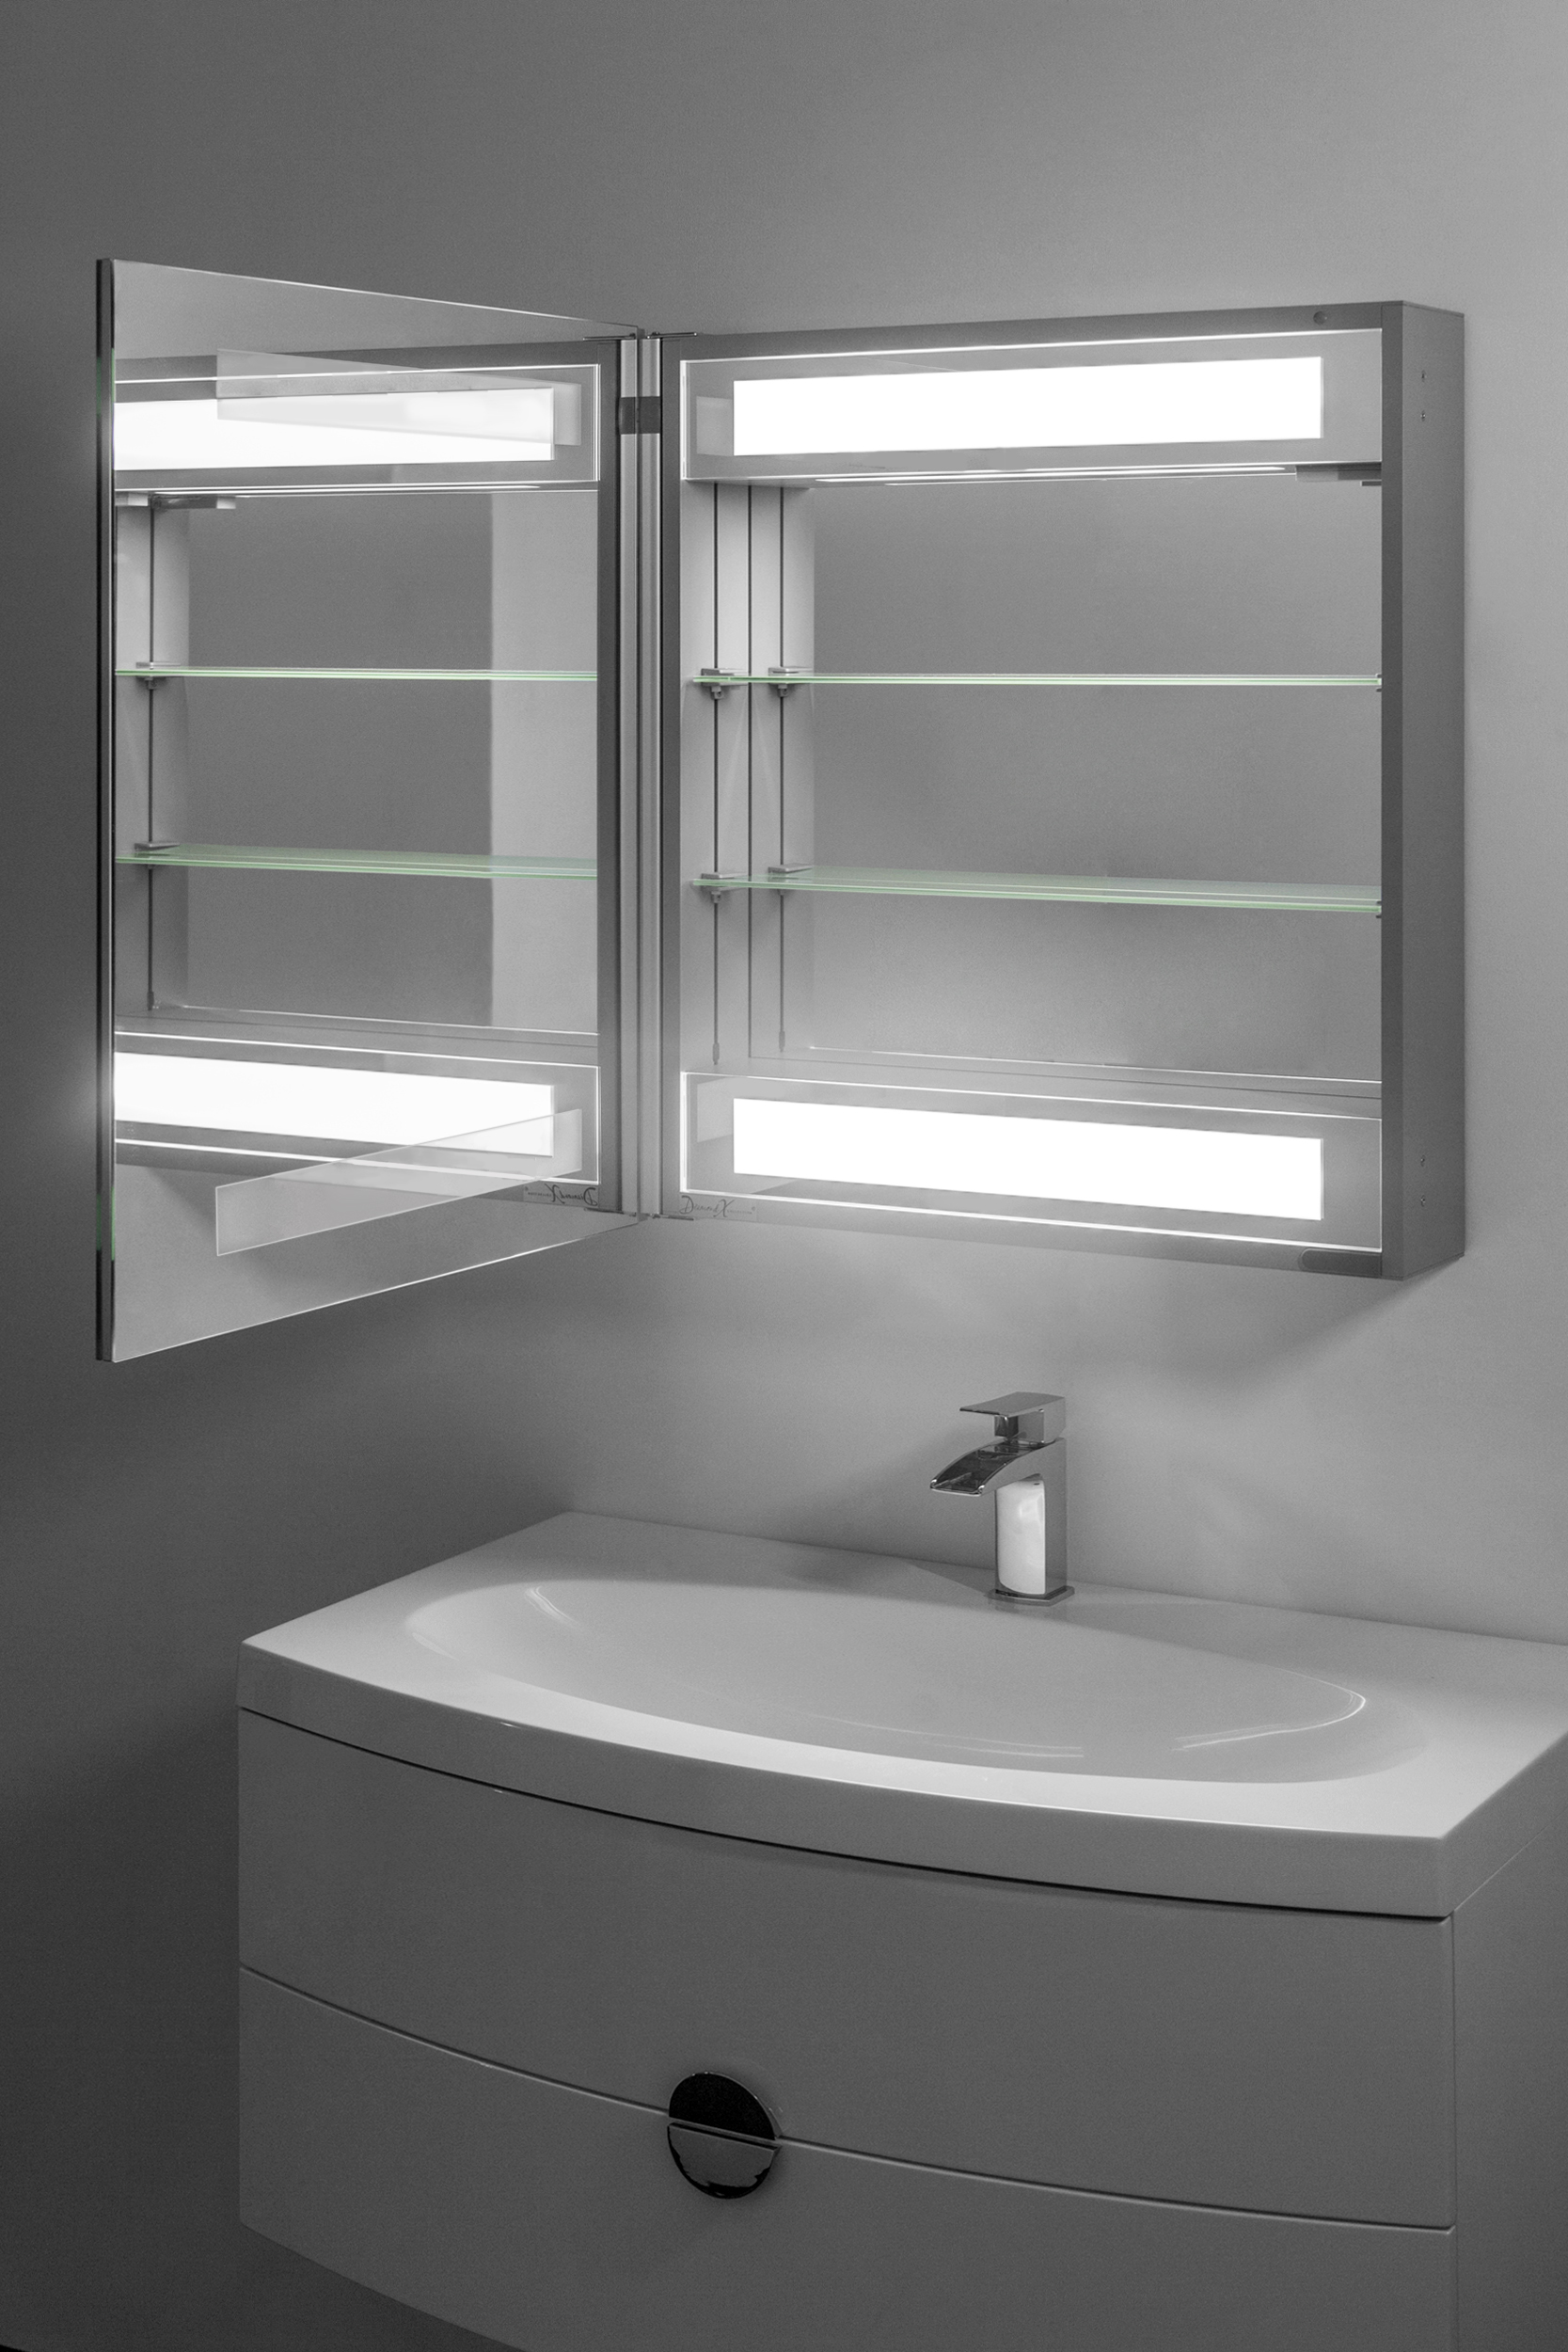 Bathroom mirror cabinets with light and shaver socket - Illuminated Bathroom Mirror Cabinets Shaver Socket Rukinet Com